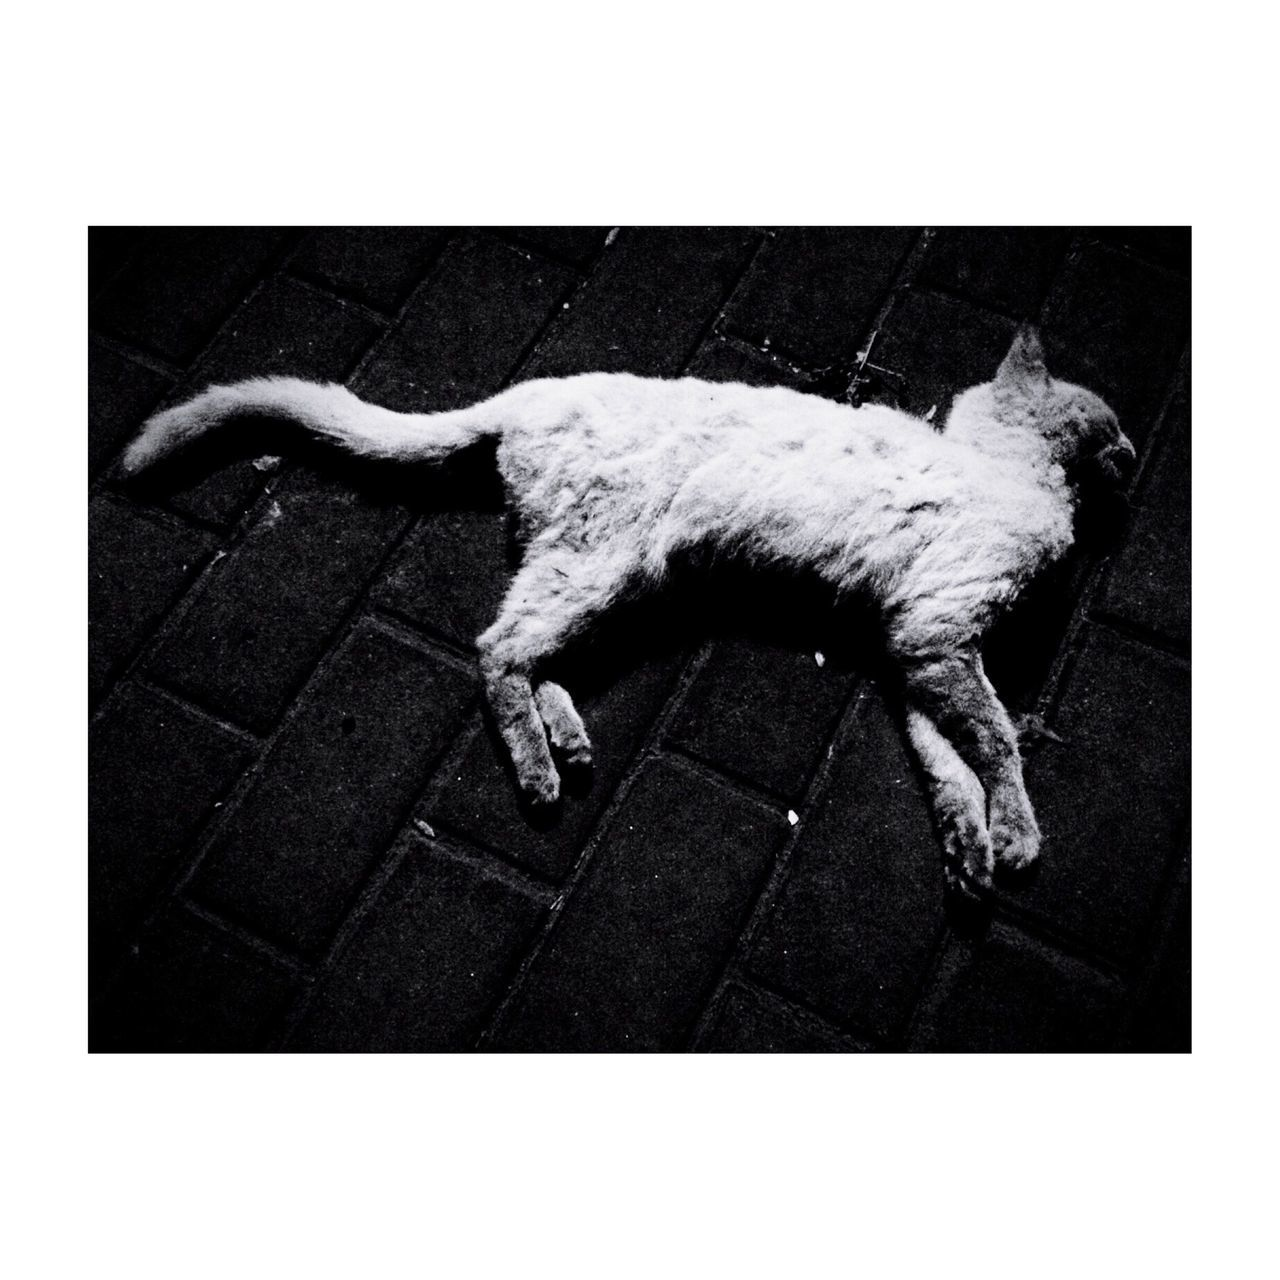 High Angle View Of Dead Cat On Street